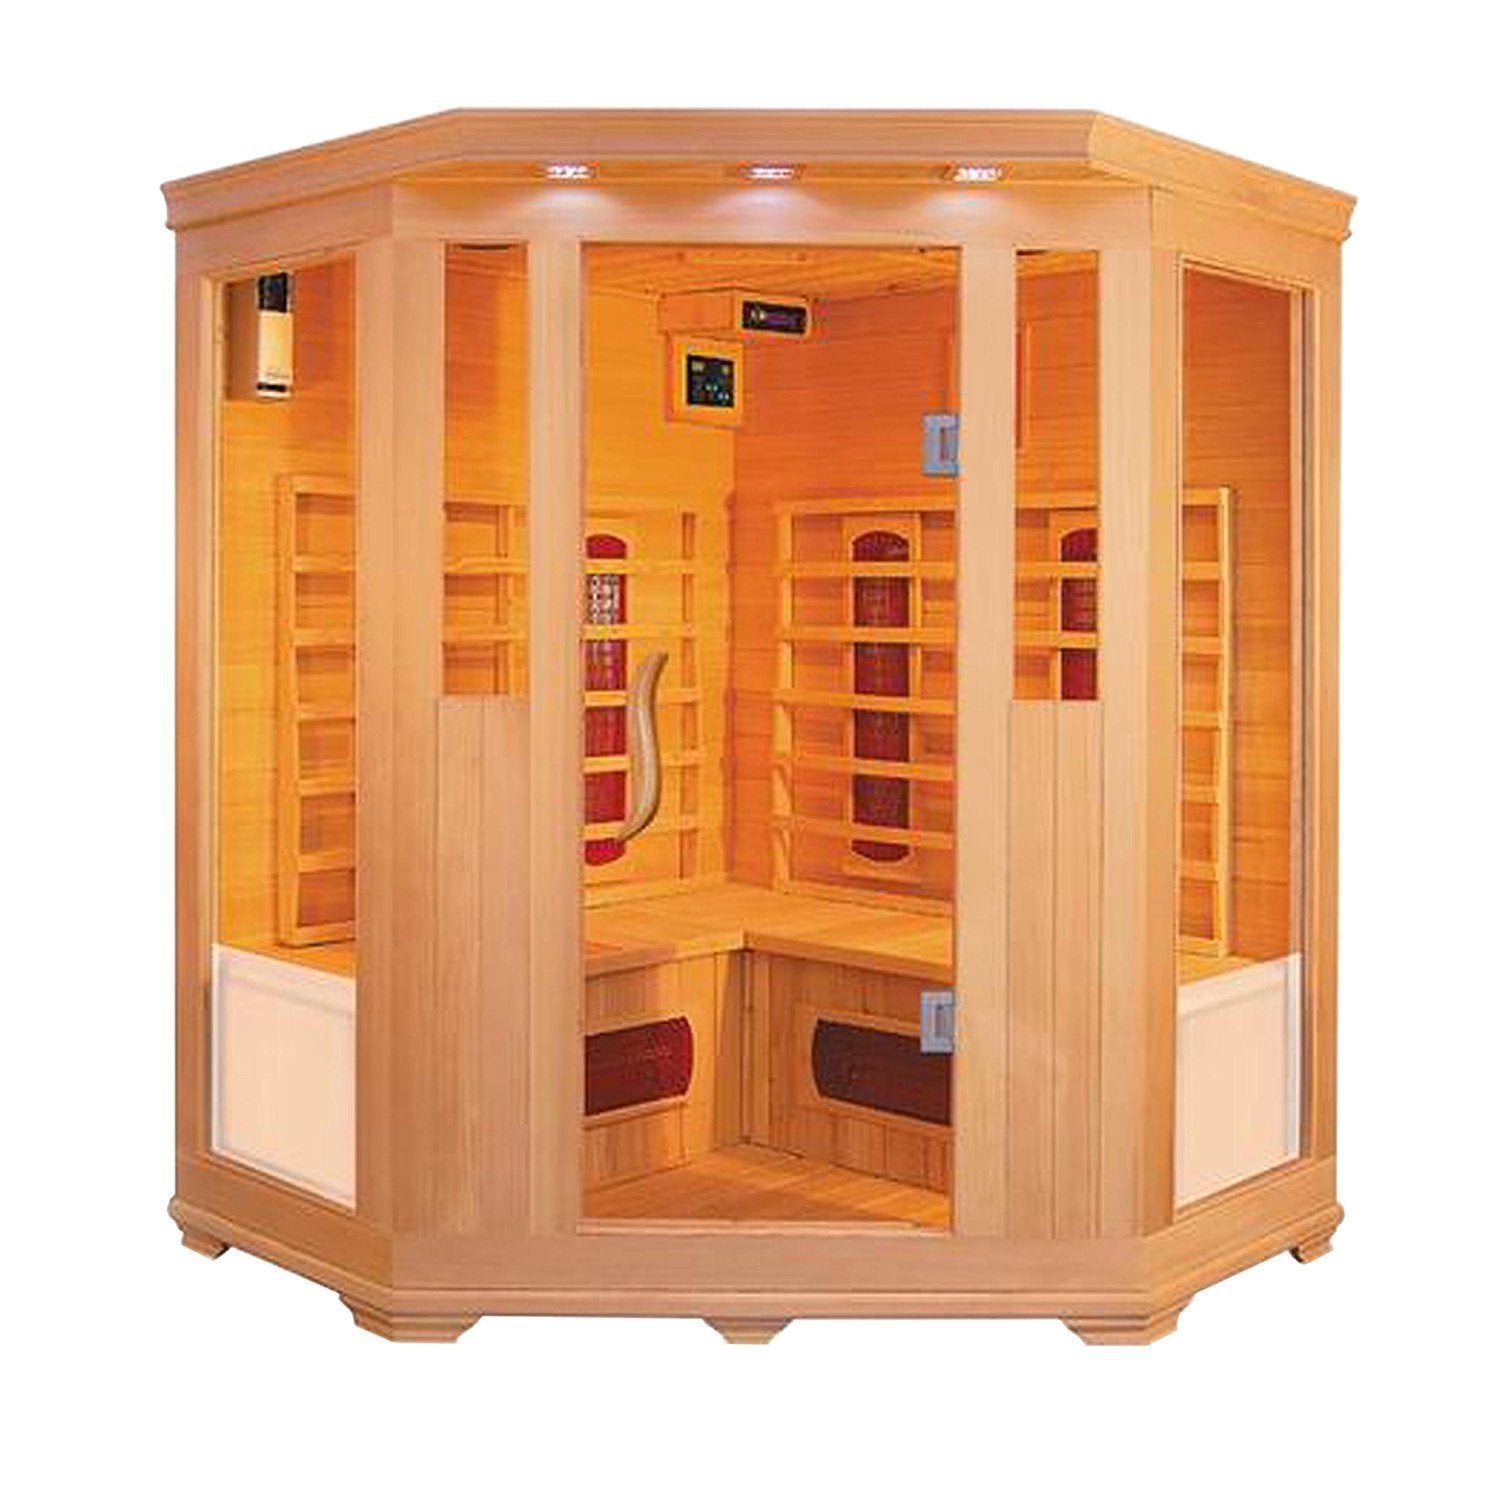 Aleko 3-4 Prs Wood Indoor Dry Infrared Sauna 2 Carbon Fib...